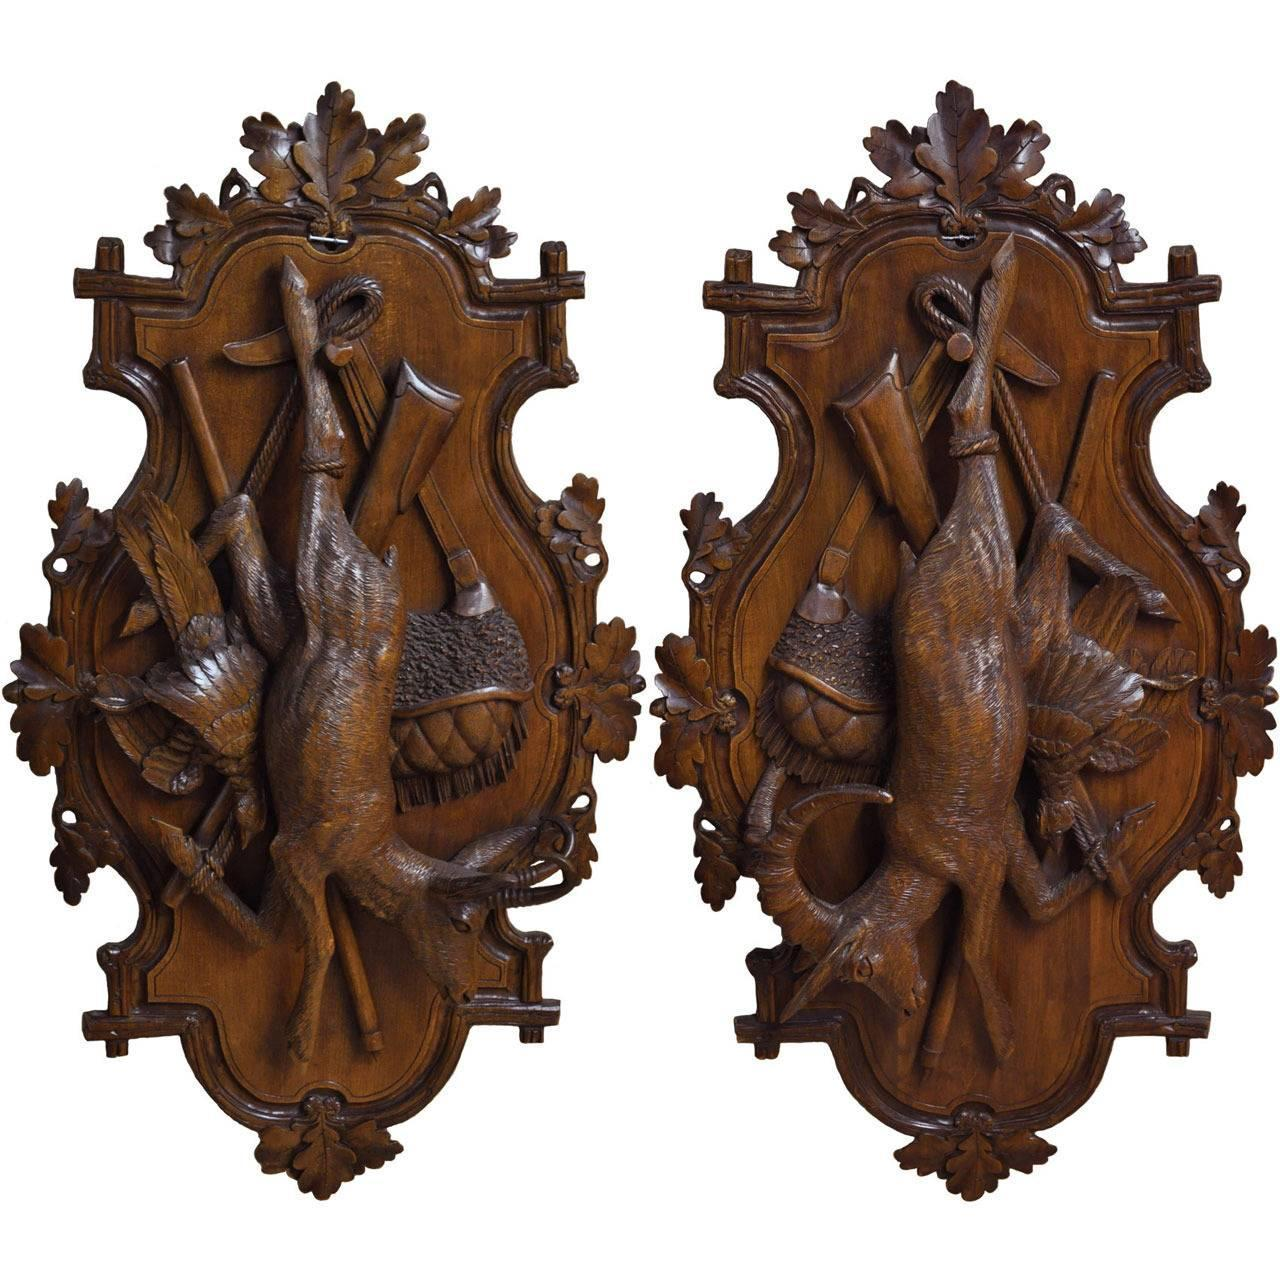 Pair Of 19th Century Swiss Carved Walnut Black Forest Wall Hunting Trophies For Sale At 1stdibs